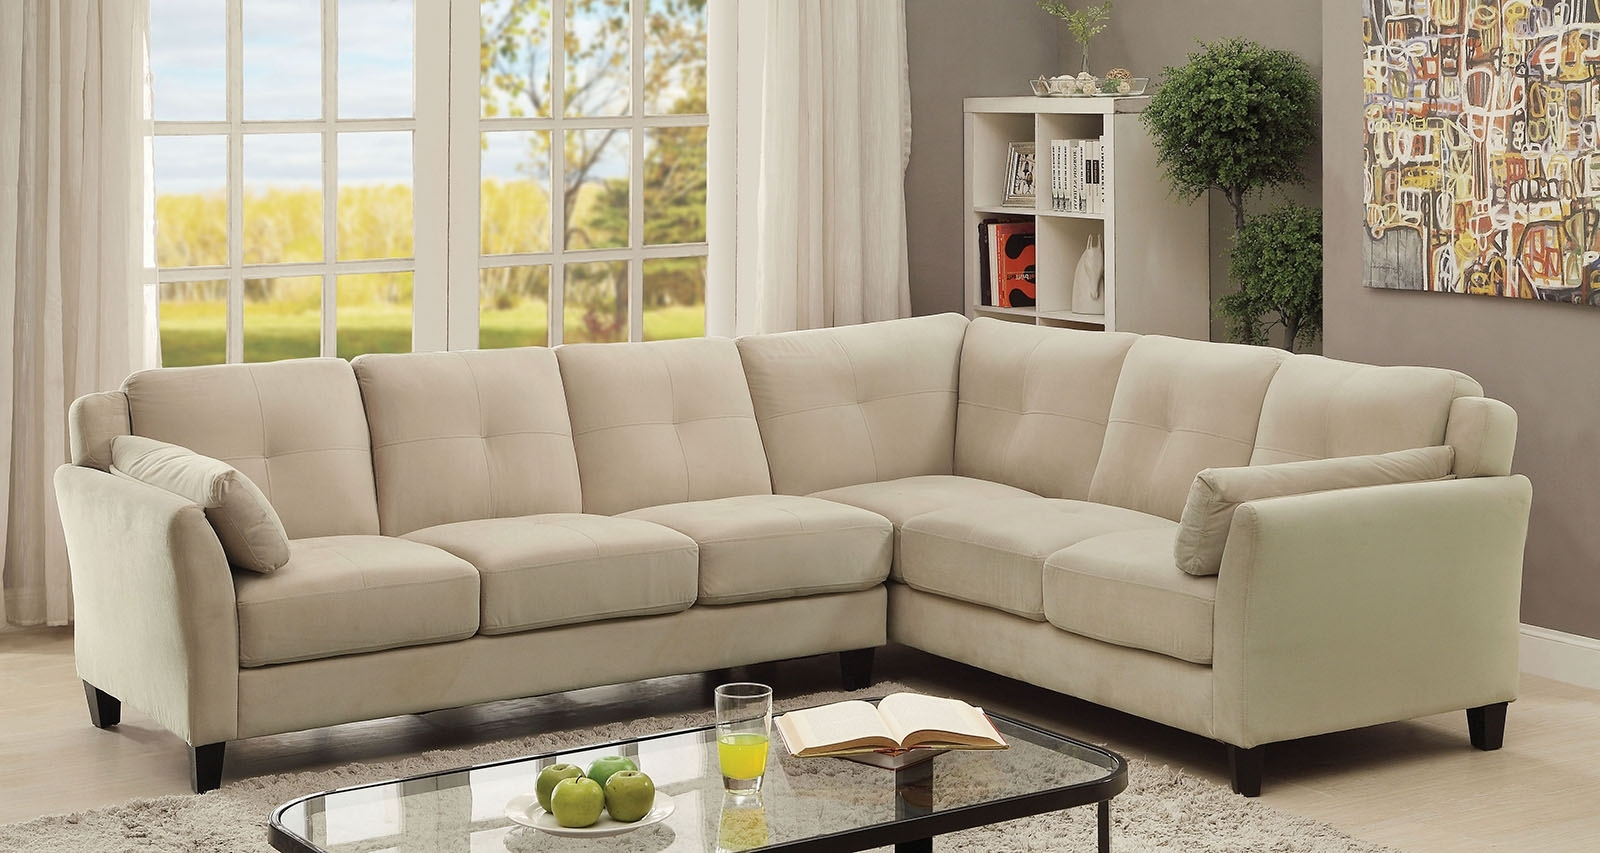 Nh Sectional Sofas With Regard To Famous Peever Ii Beige Sectional (View 4 of 20)